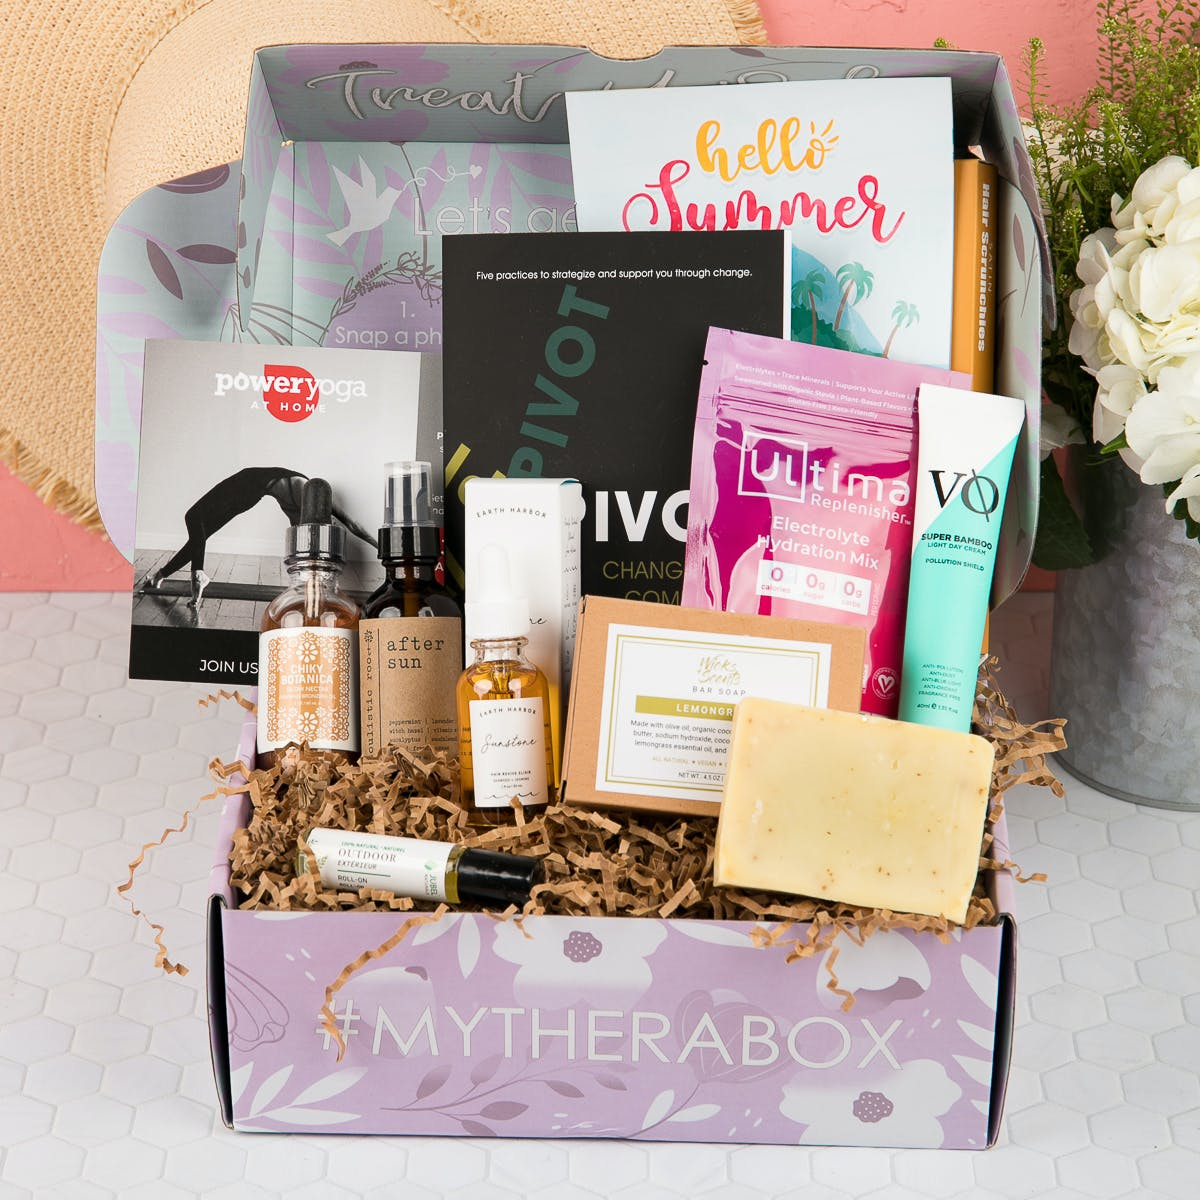 therabox - self-care subscription box with products in it